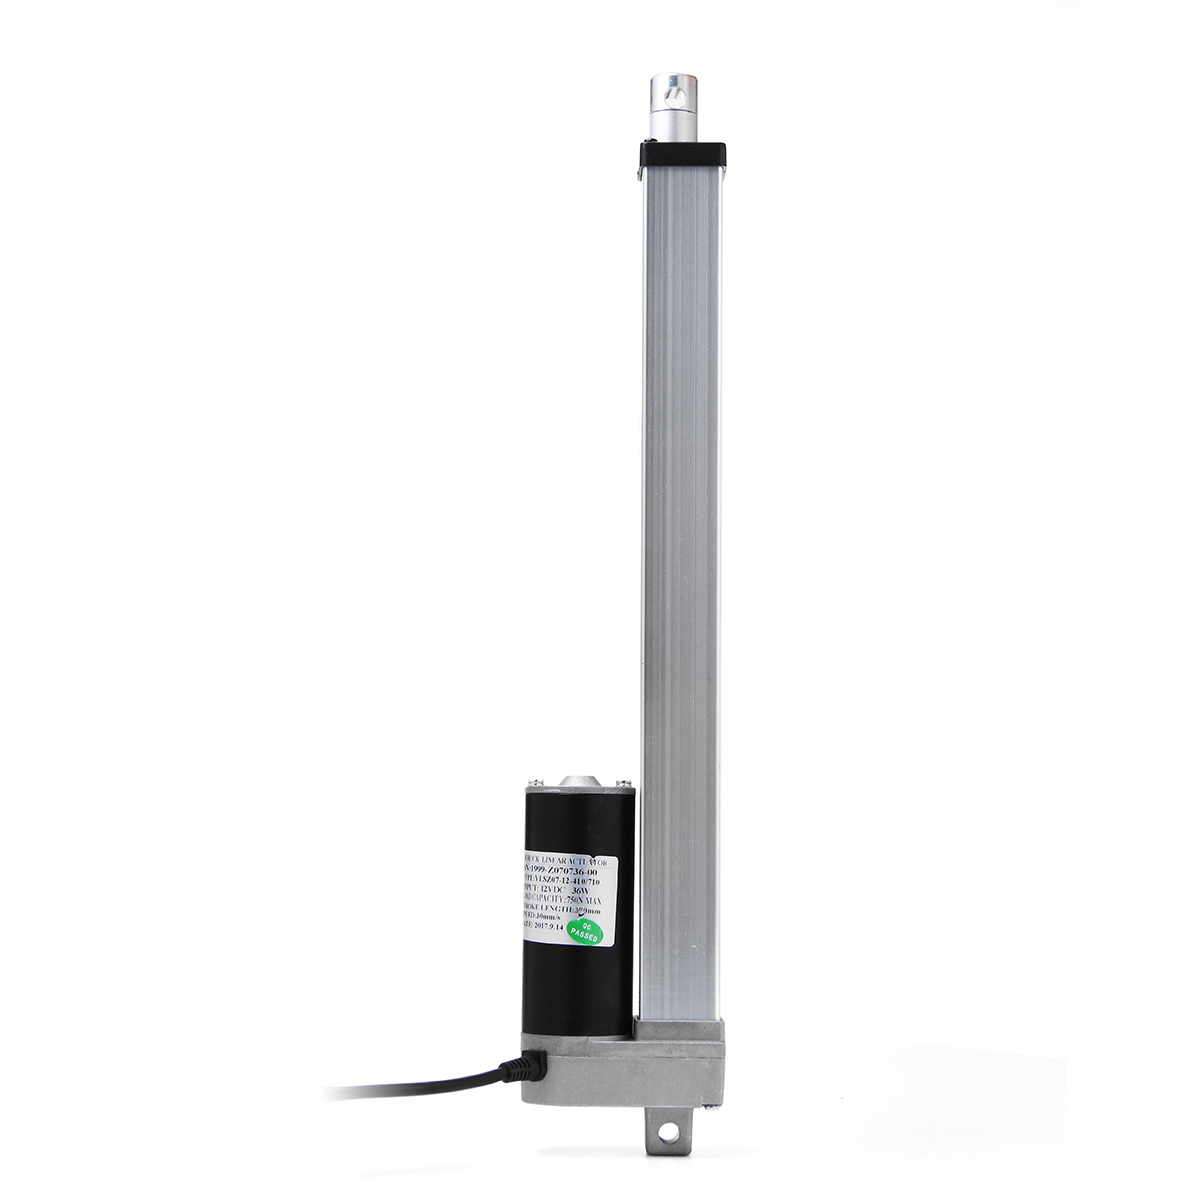 750N 167 Pound Max Lift DC 12V Electric Motor Linear Heavy   Actuator Stroke Linear Motion Controller Multi-function750N 167 Pound Max Lift DC 12V Electric Motor Linear Heavy   Actuator Stroke Linear Motion Controller Multi-function